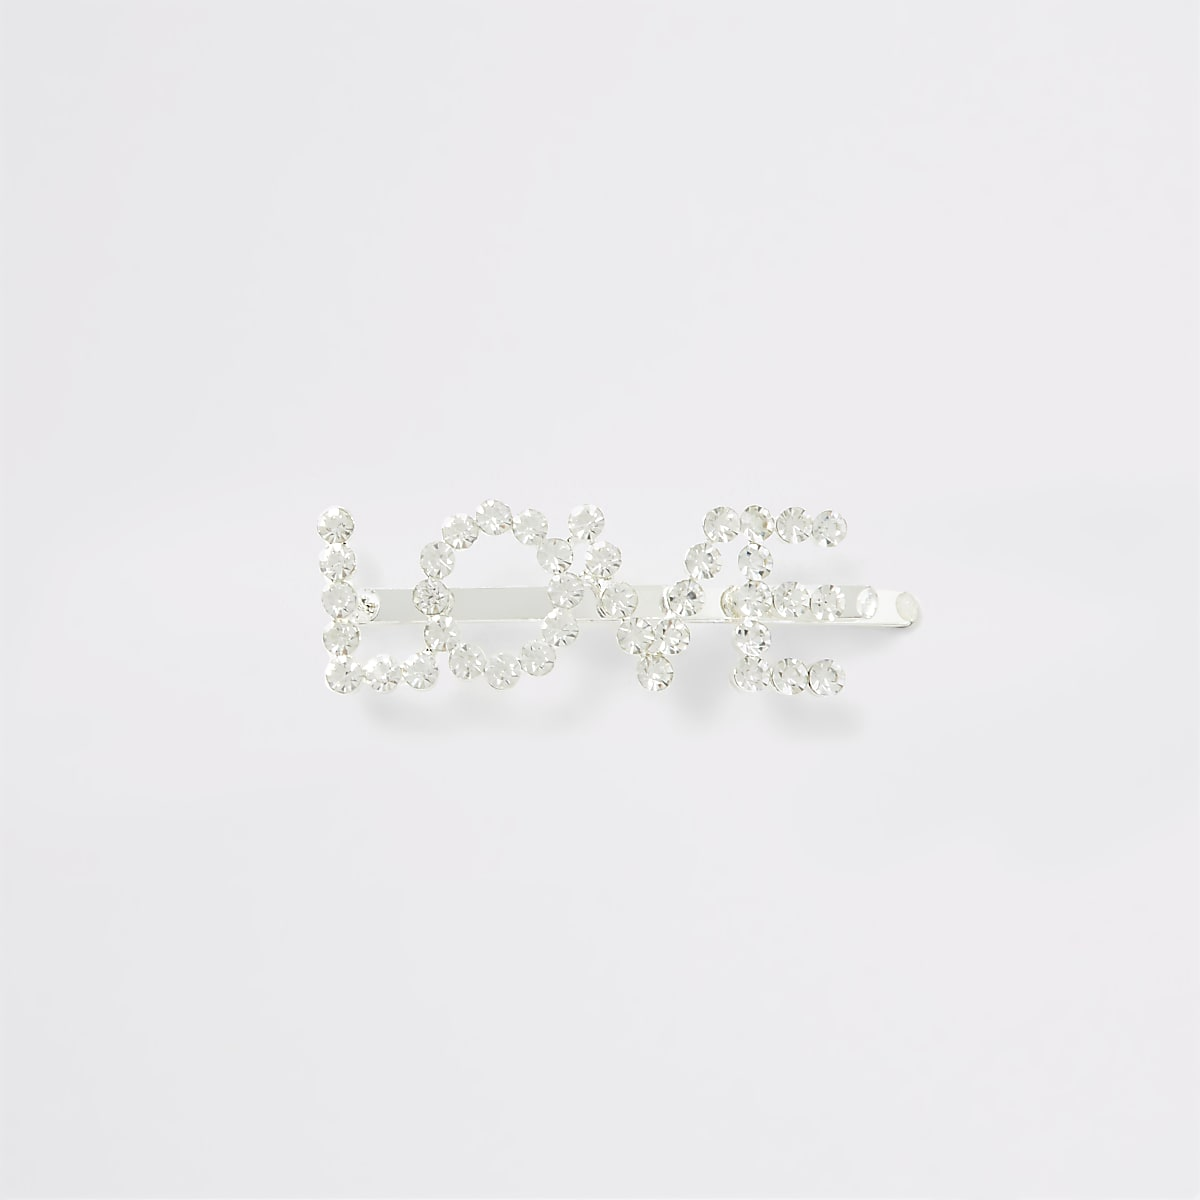 Silver colour 'Love' diamante pave hair slide